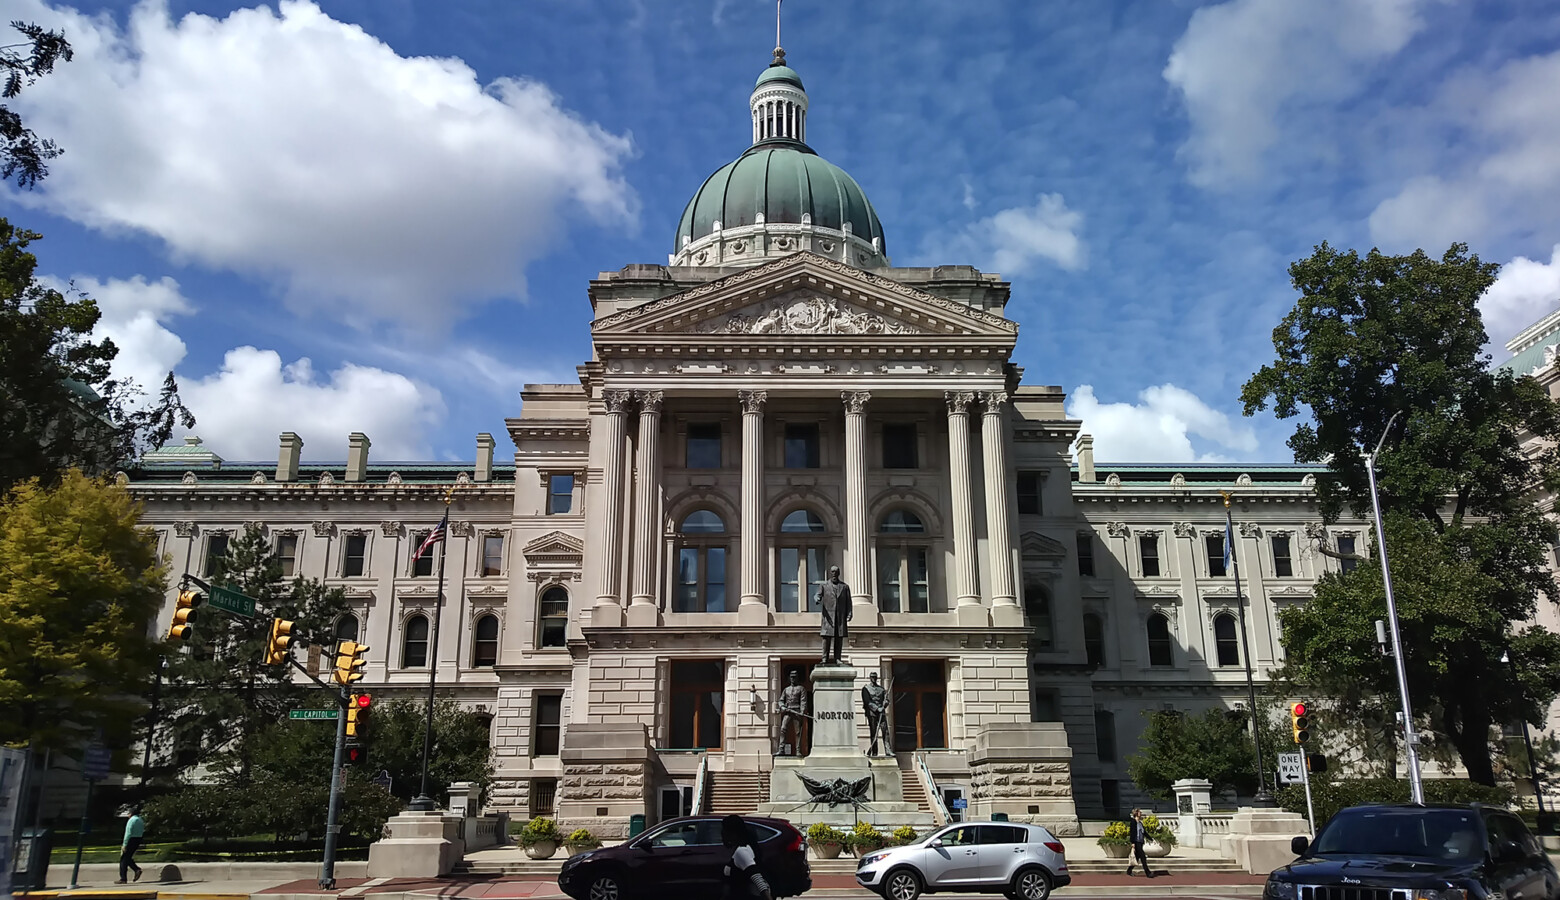 It will still be weeks before Indiana lawmakers can gather to redraw congressional and state legislative district boundaries. (Lauren Chapman/IPB News)